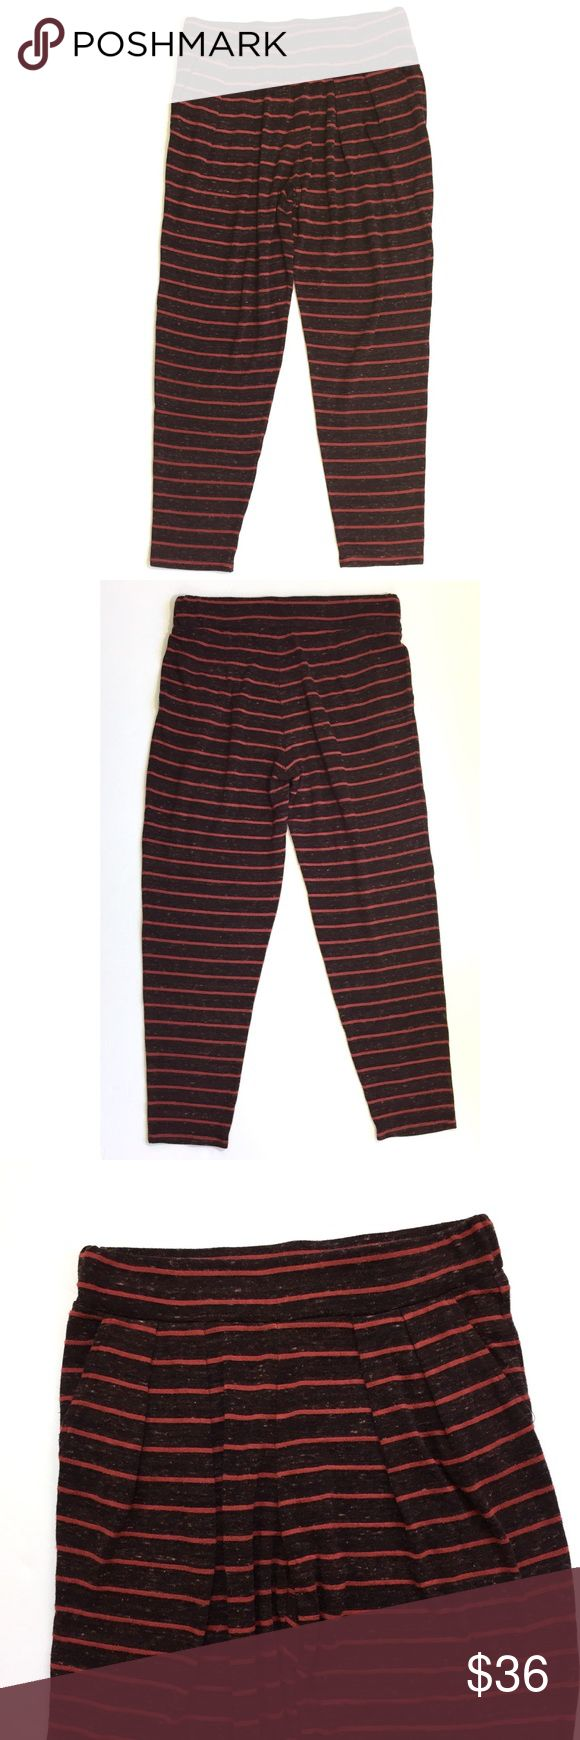 """Saint Grace striped lounge pants pockets Size Medium - Lightweight knit heathers burgundy striped pants. Super comfy. Slanted front pockets. Thick waistband. Legs taper a bit. Pleated front.  Waist laying flat measures 14.5"""" and has elastic. Rise 11"""". Inseam 27"""".  In excellent condition. Saint Grace Pants"""